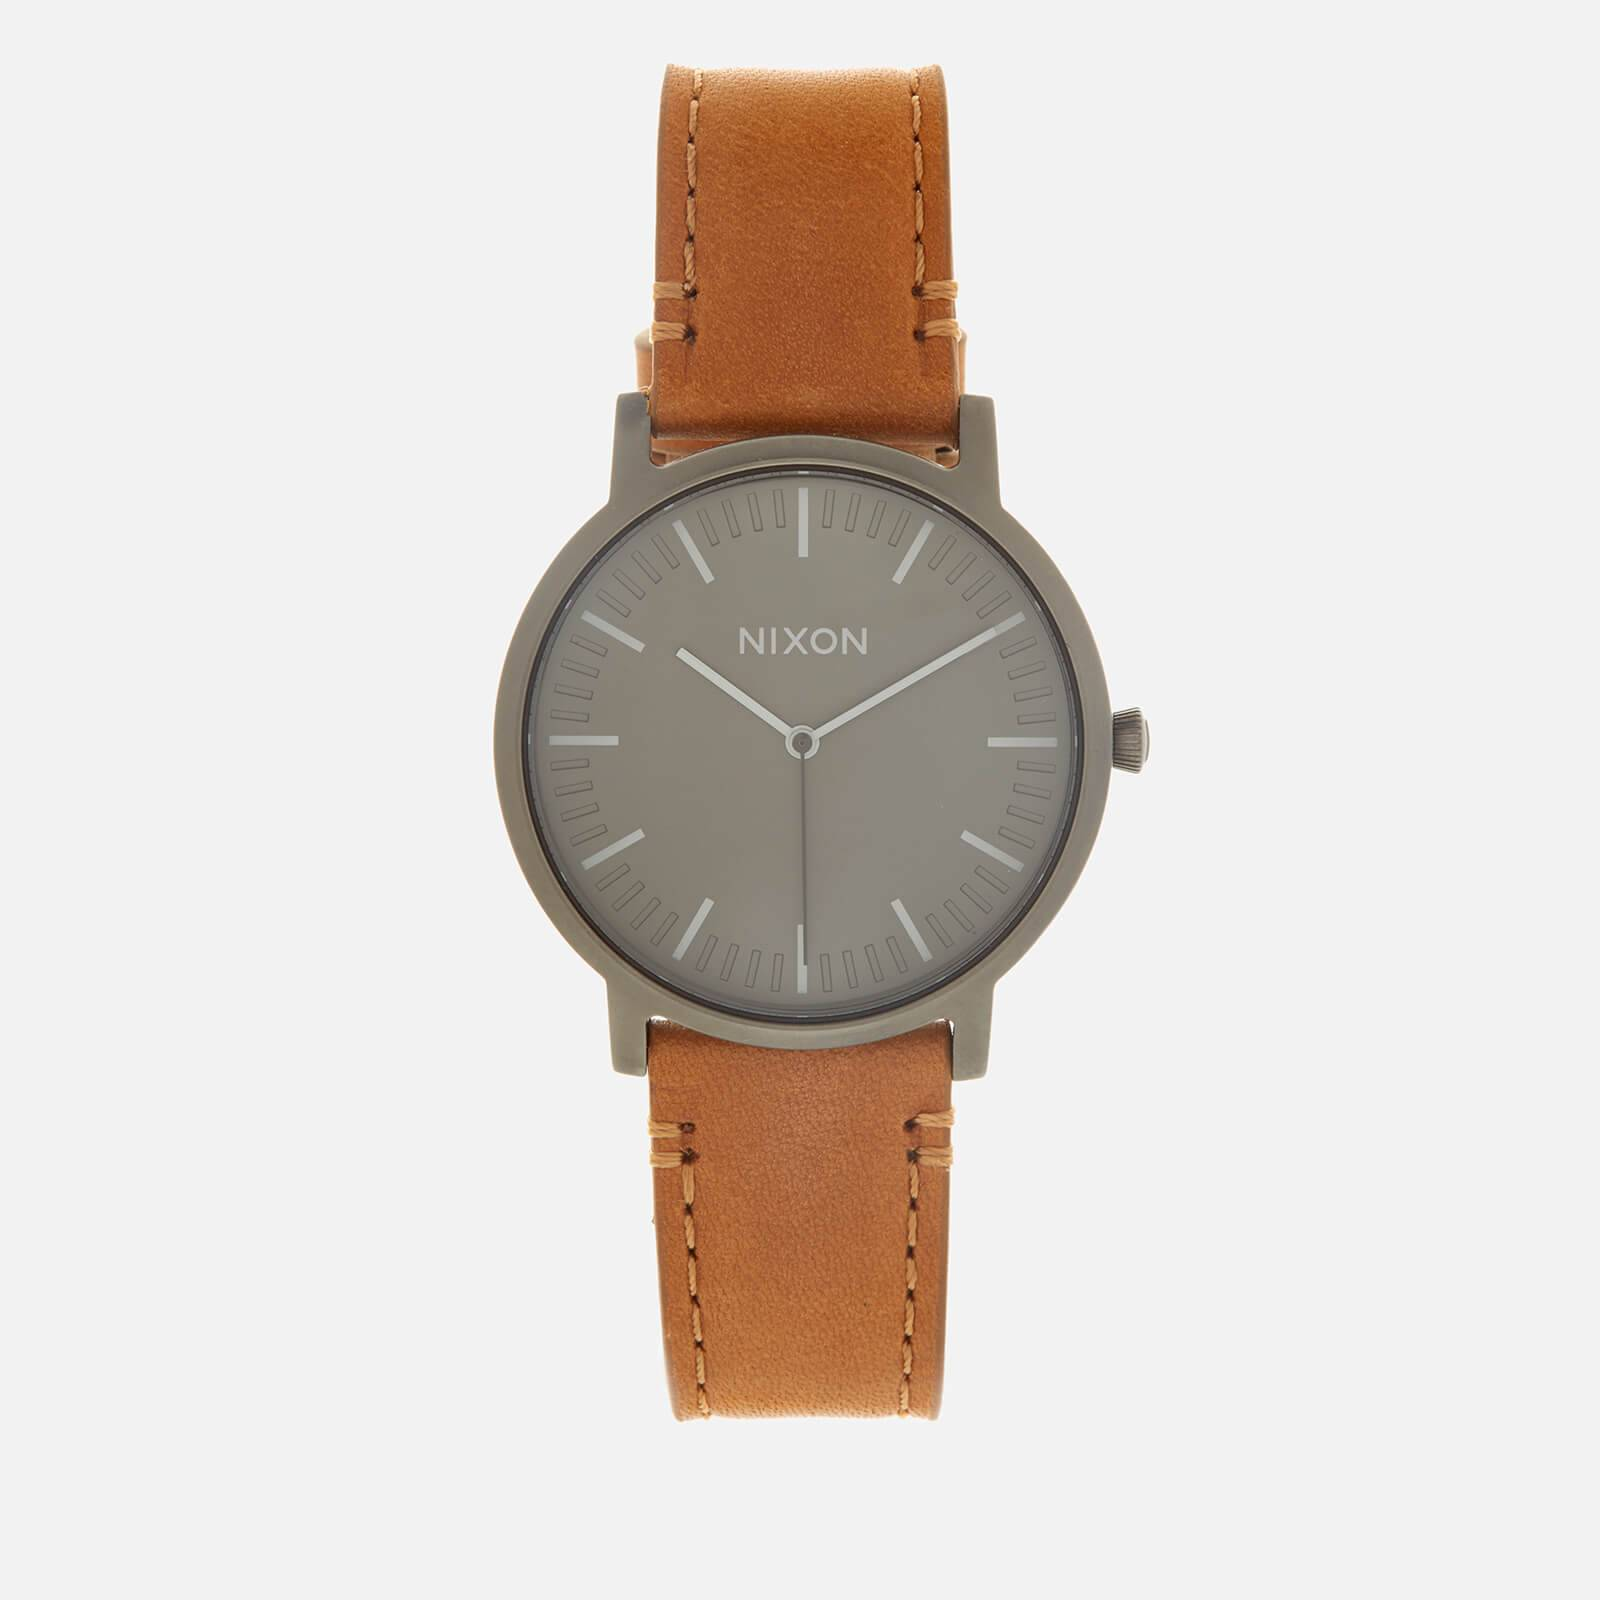 Nixon Men's The Porter Leather Watch - Gunmetal/Charcoal/Taupe